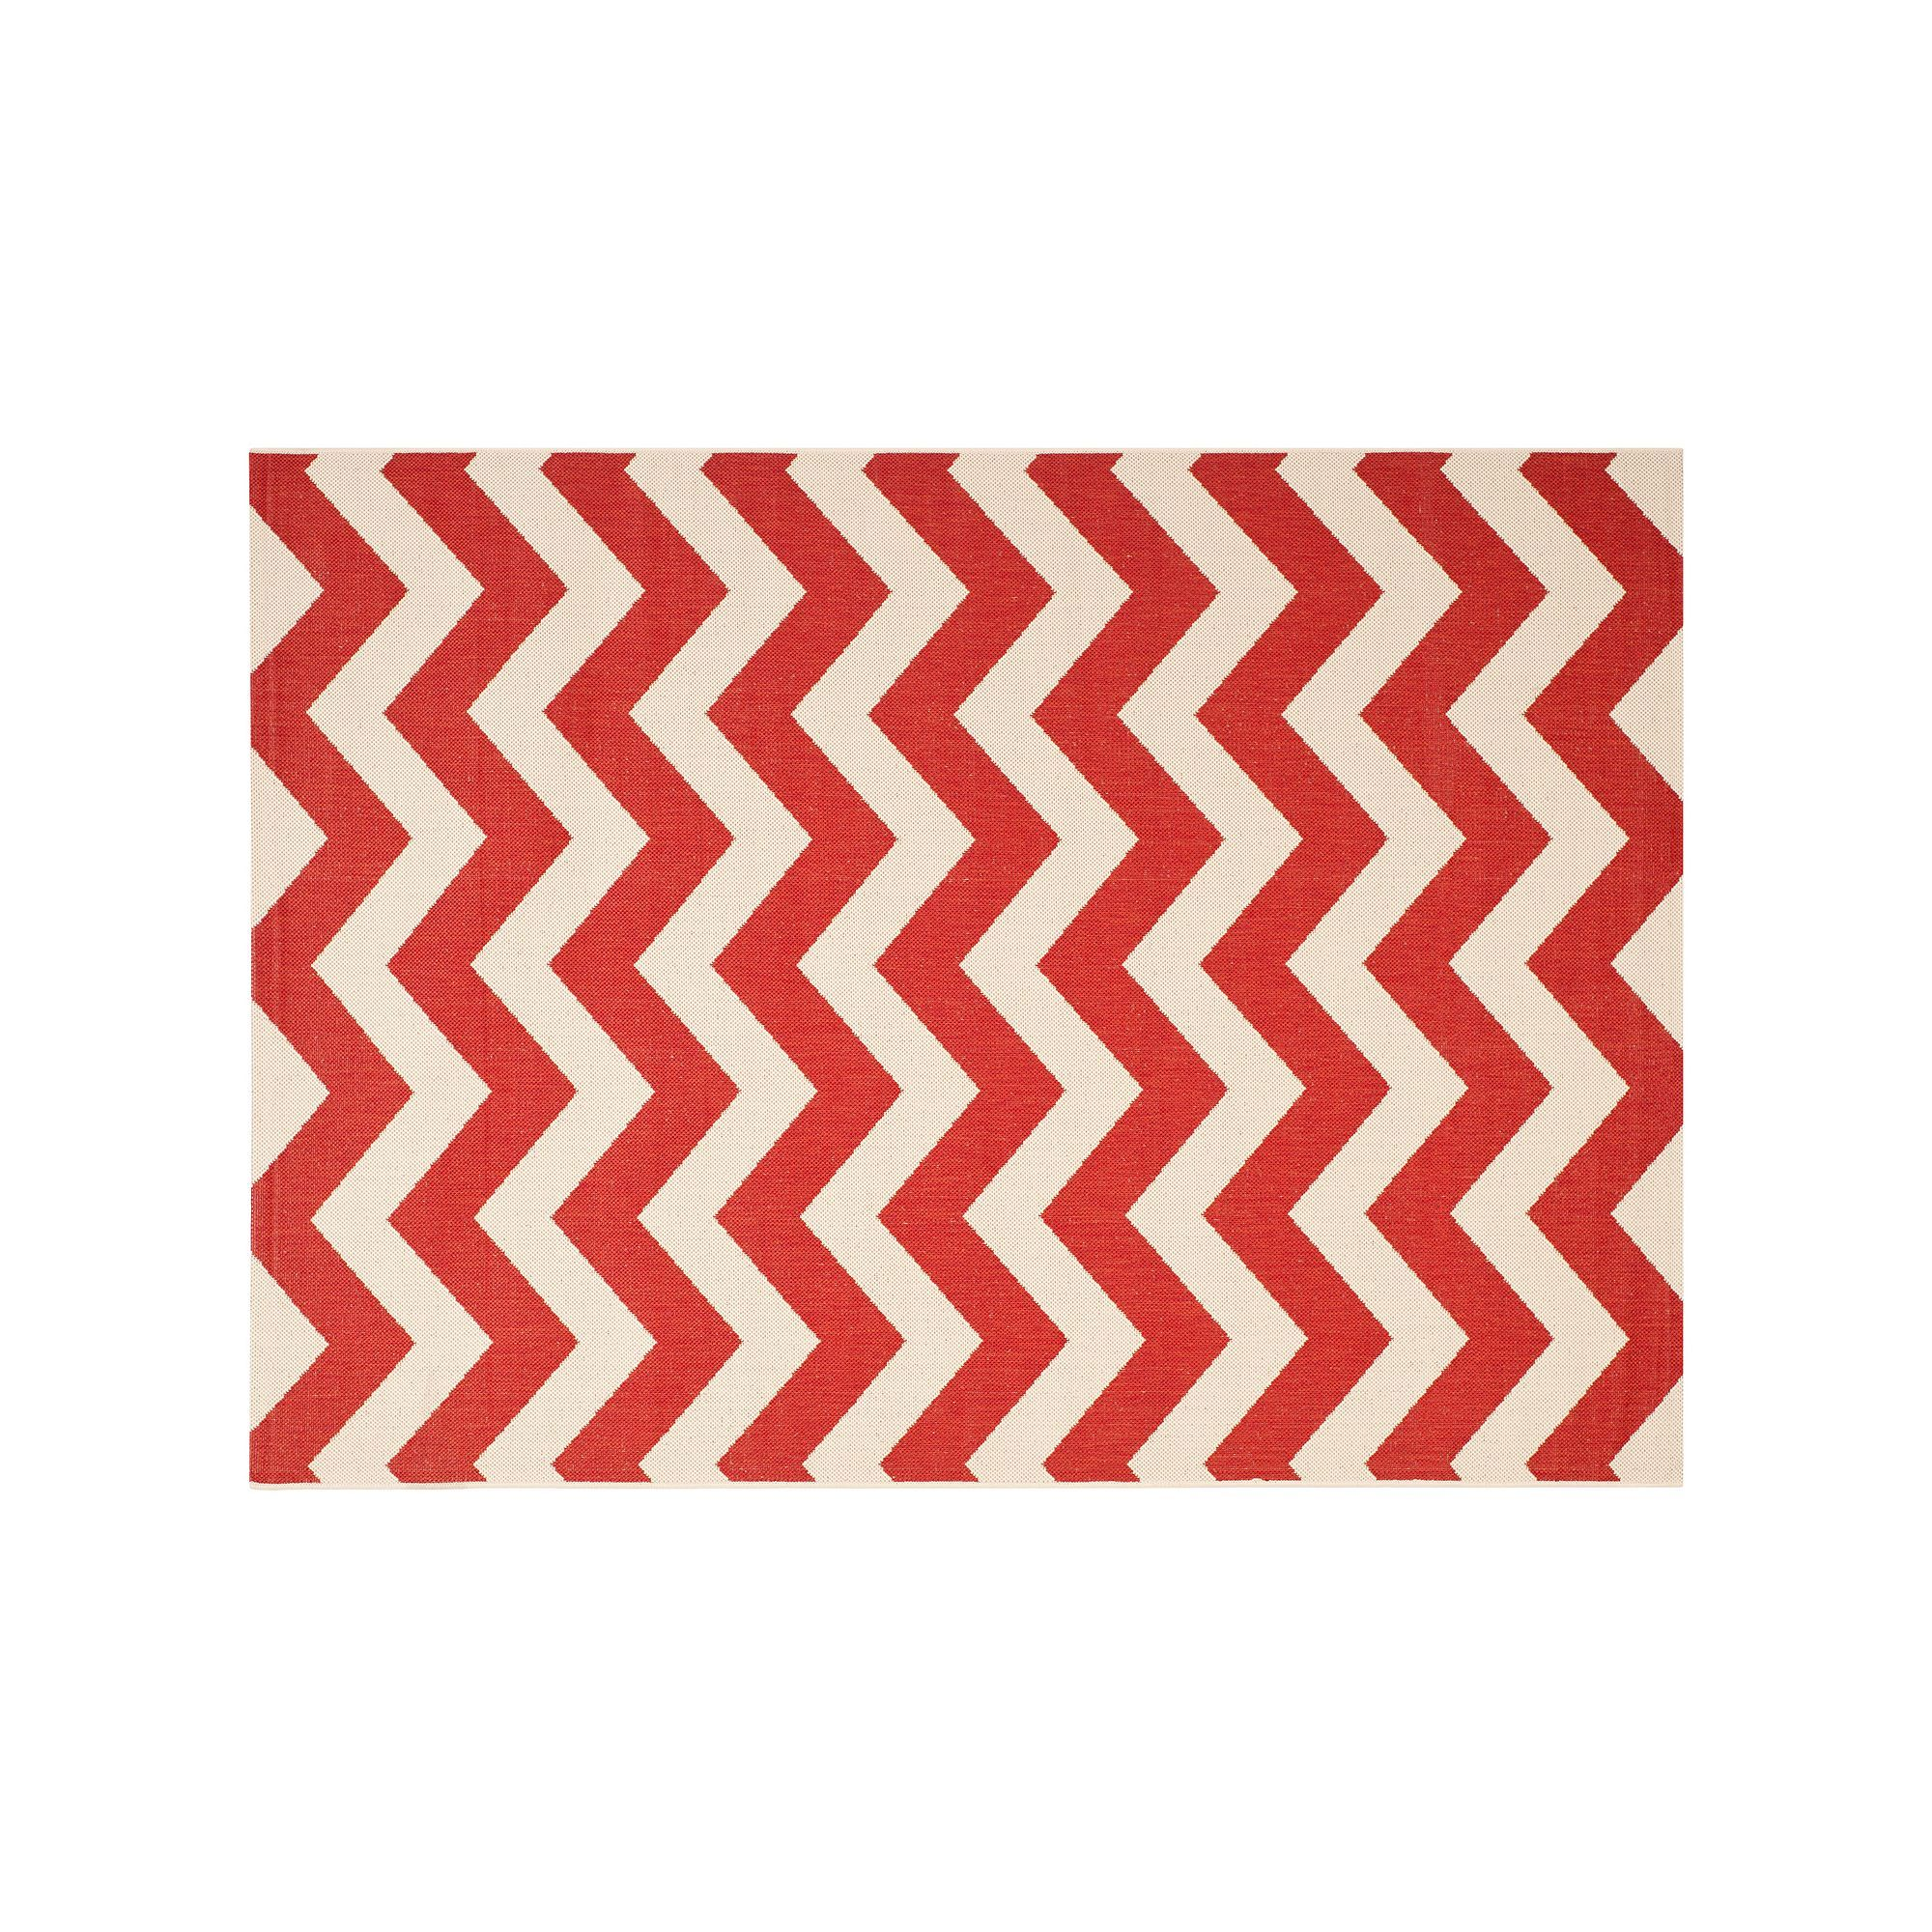 safavieh courtyard zigzag chevron indoor outdoor rug brown  - safavieh courtyard zigzag chevron indoor outdoor rug brown